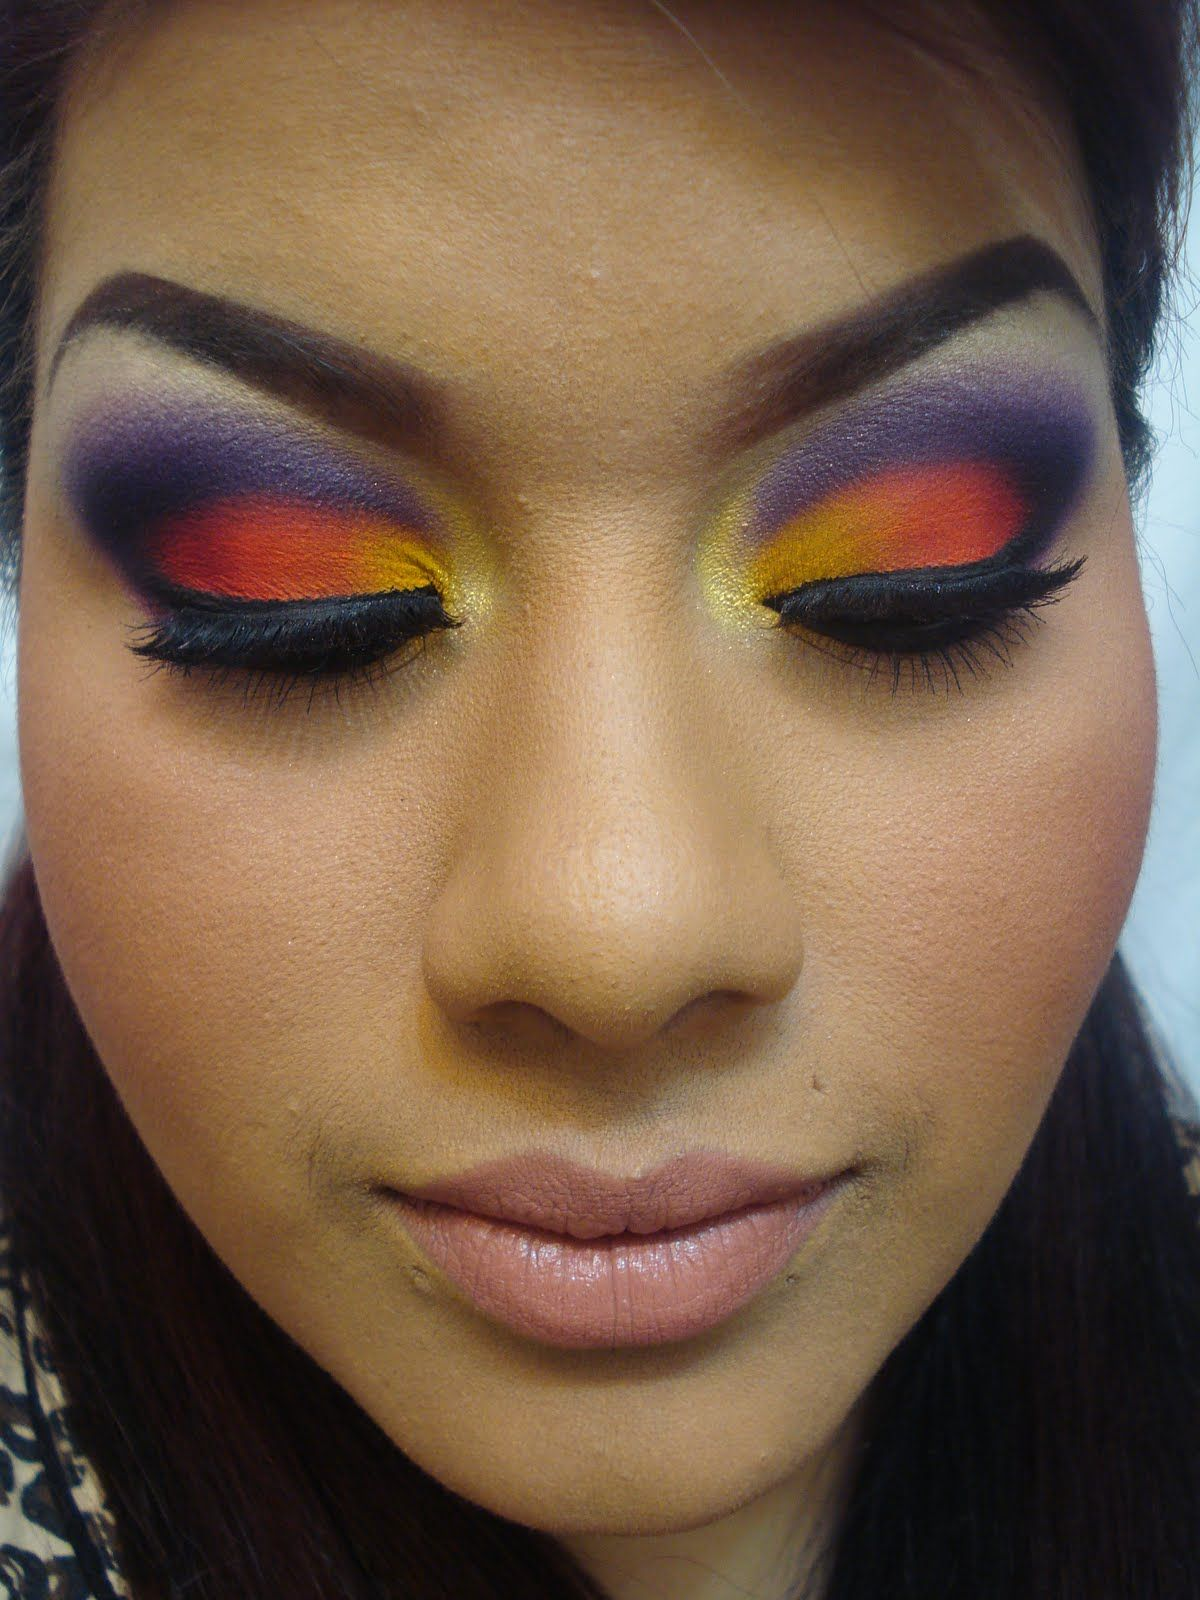 purple orange yellow eyeshadow hair make up nails. Black Bedroom Furniture Sets. Home Design Ideas